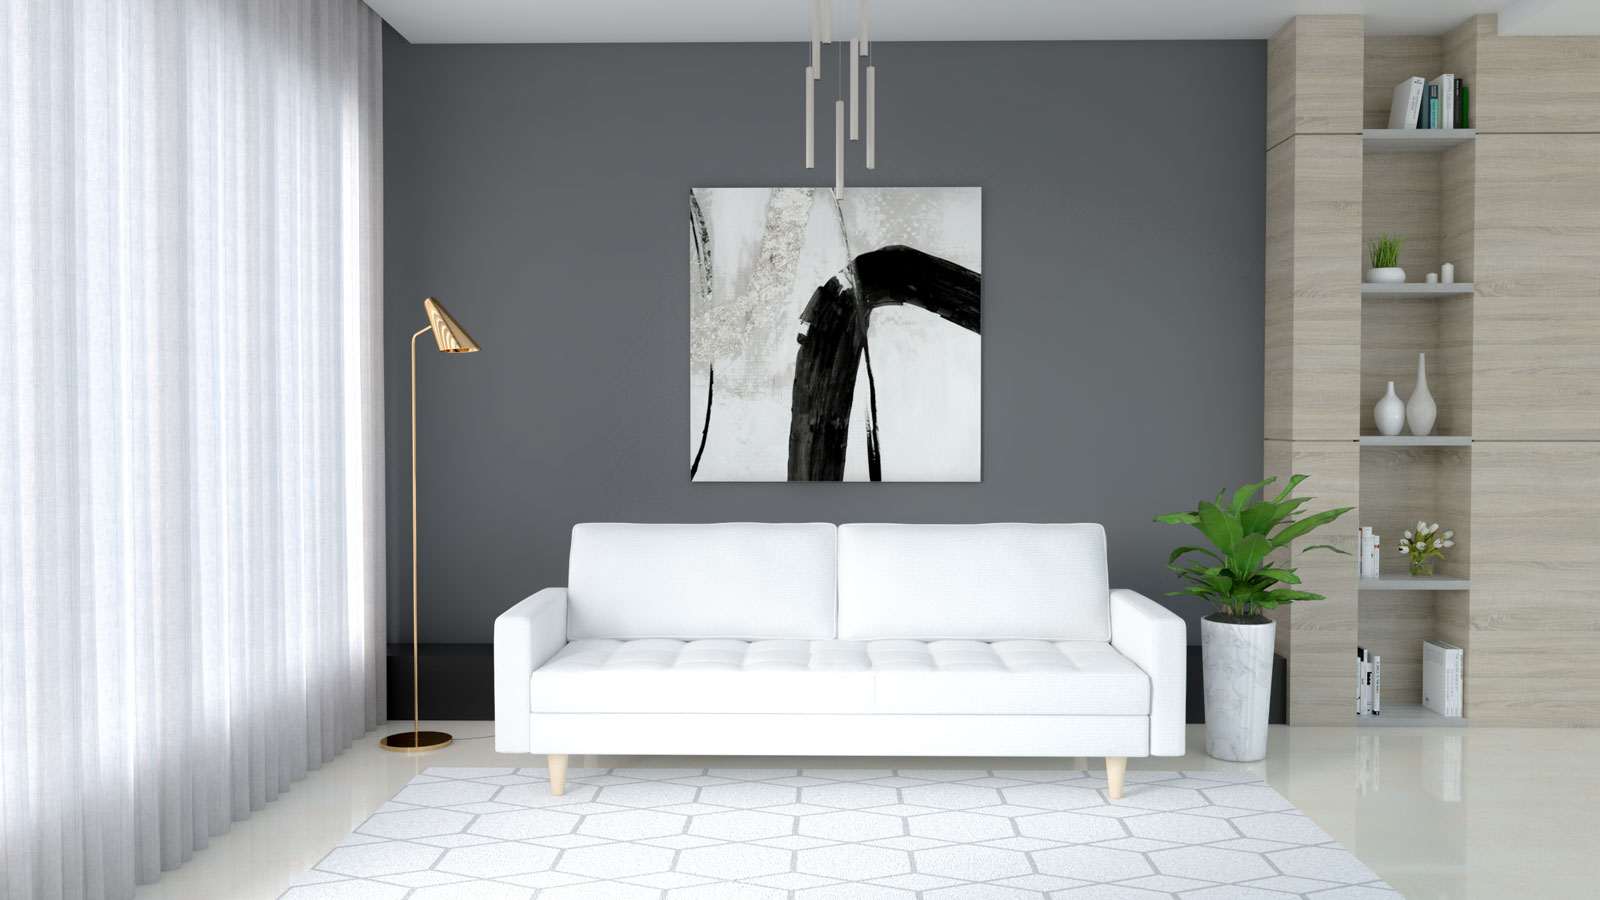 White couch with dark gray wall